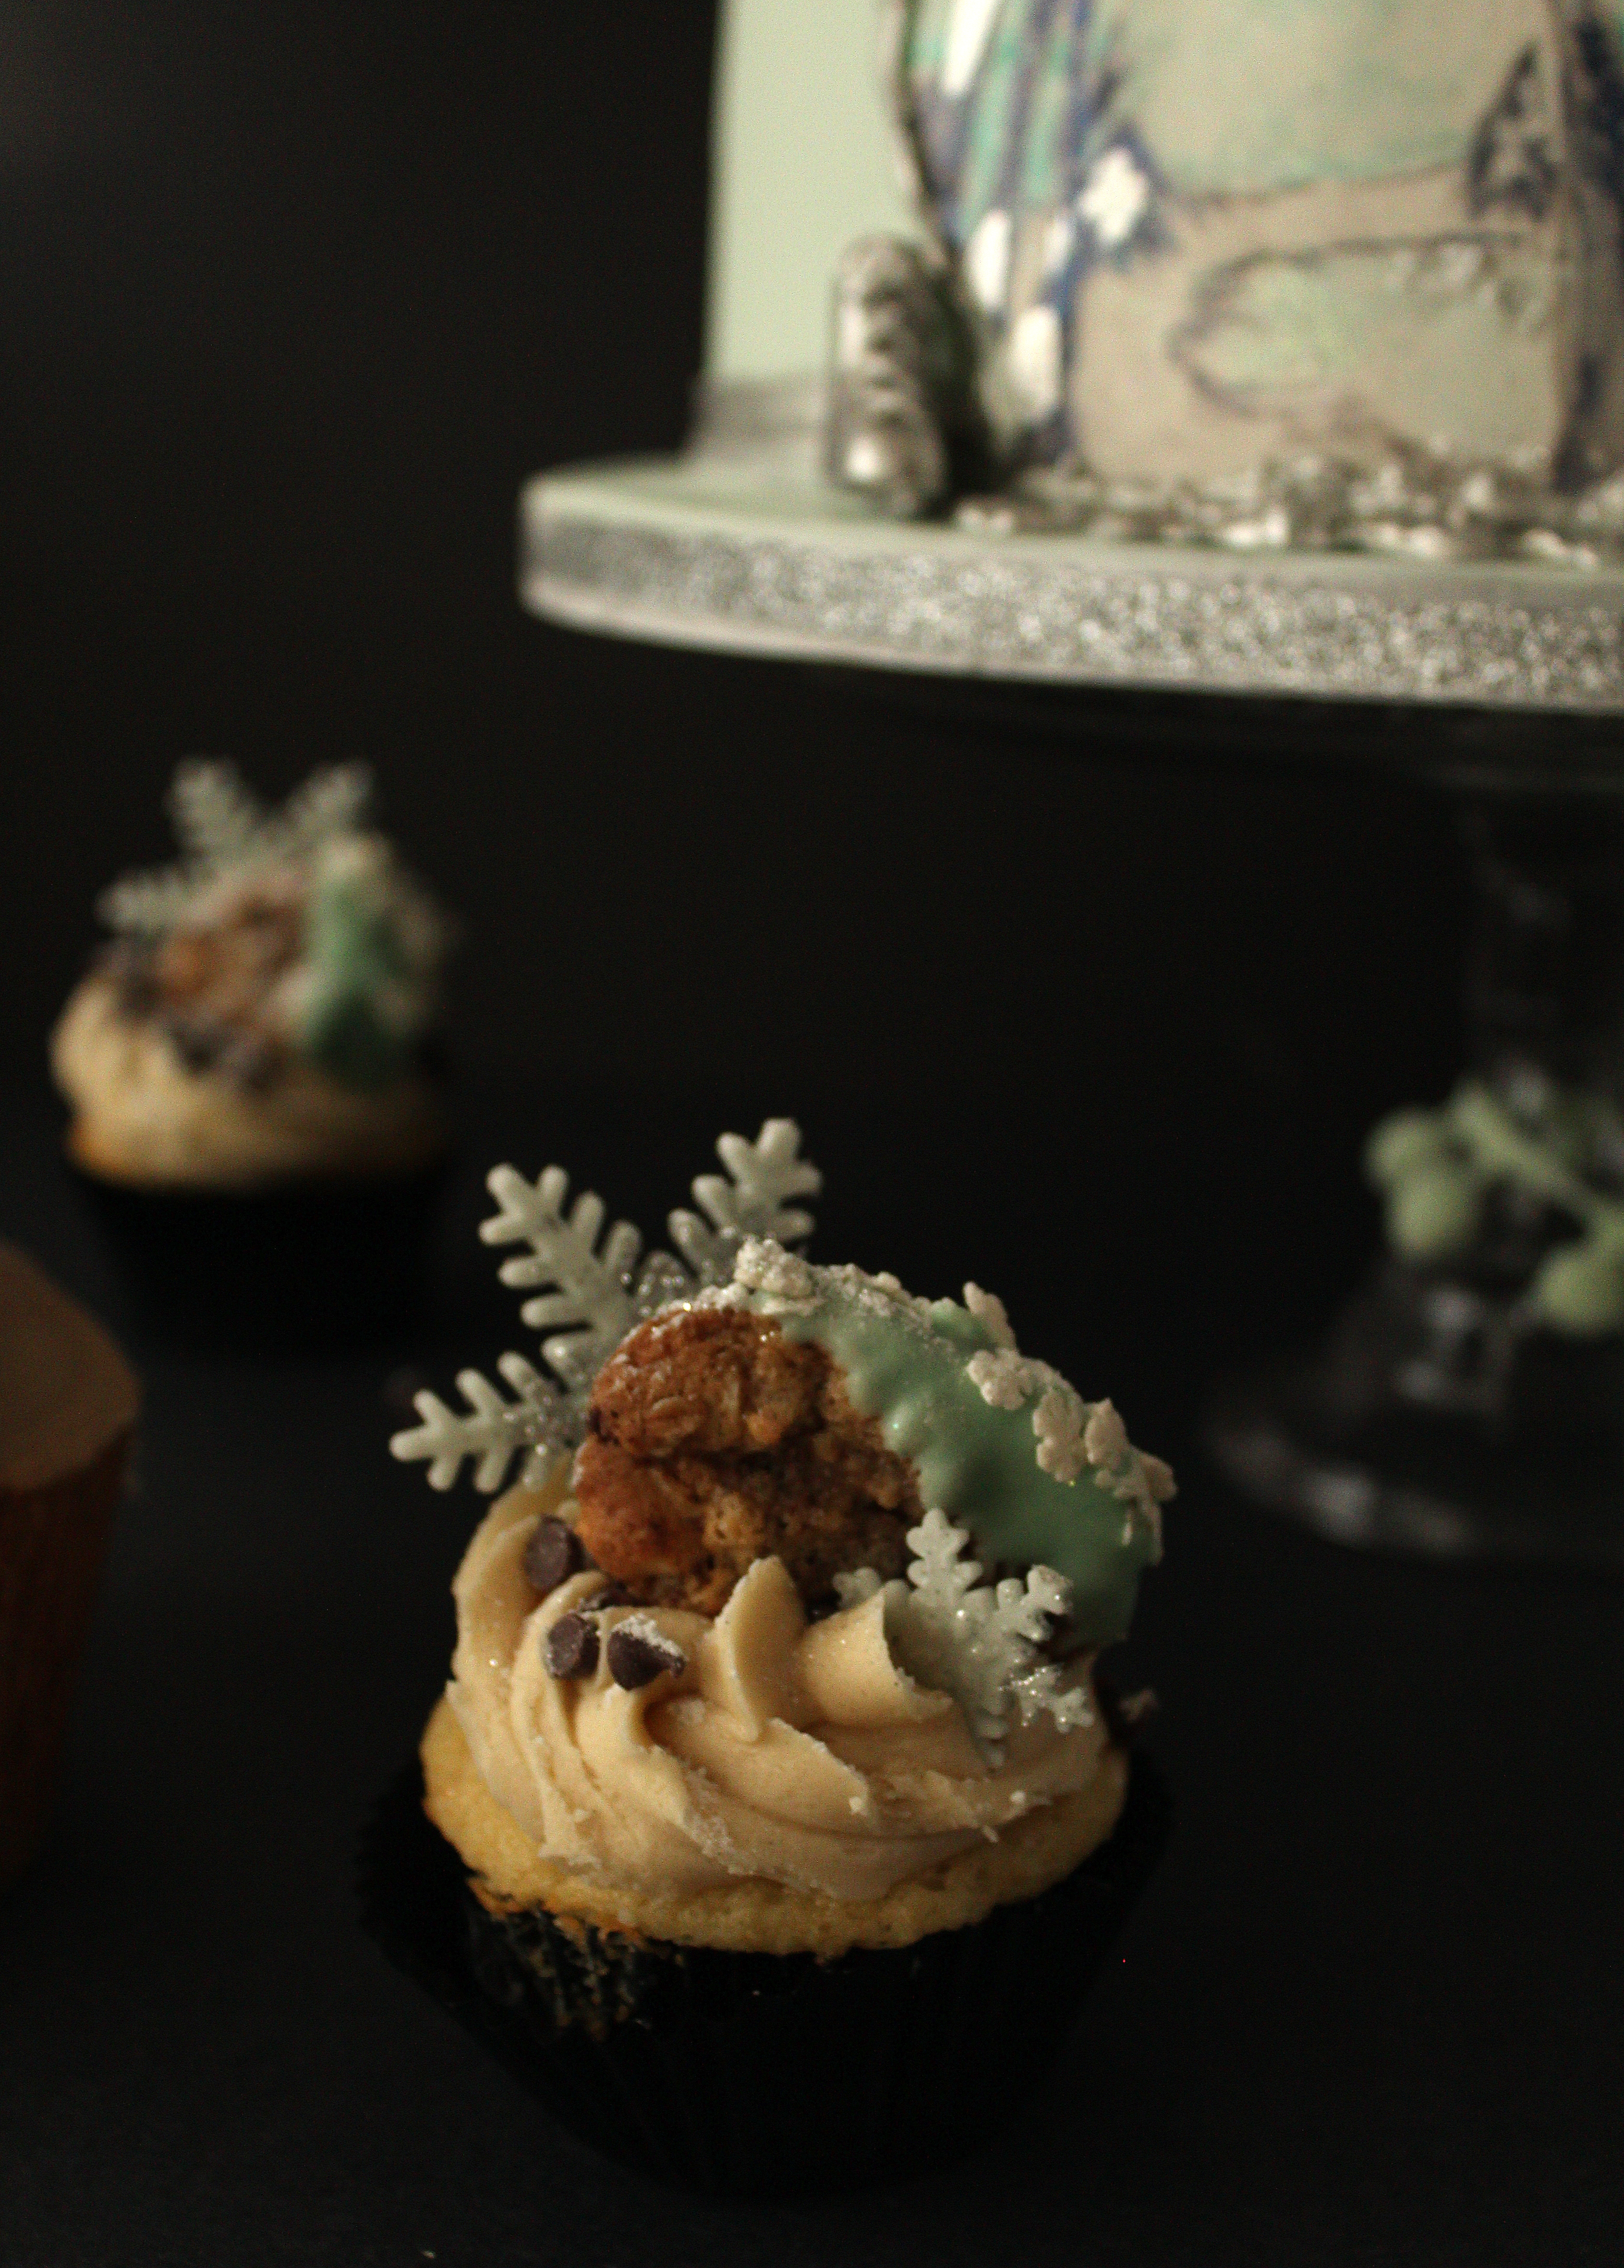 20150123-Vanilla Cupcake with Cookie Dough Frosting and mini Chocolate Chip cook